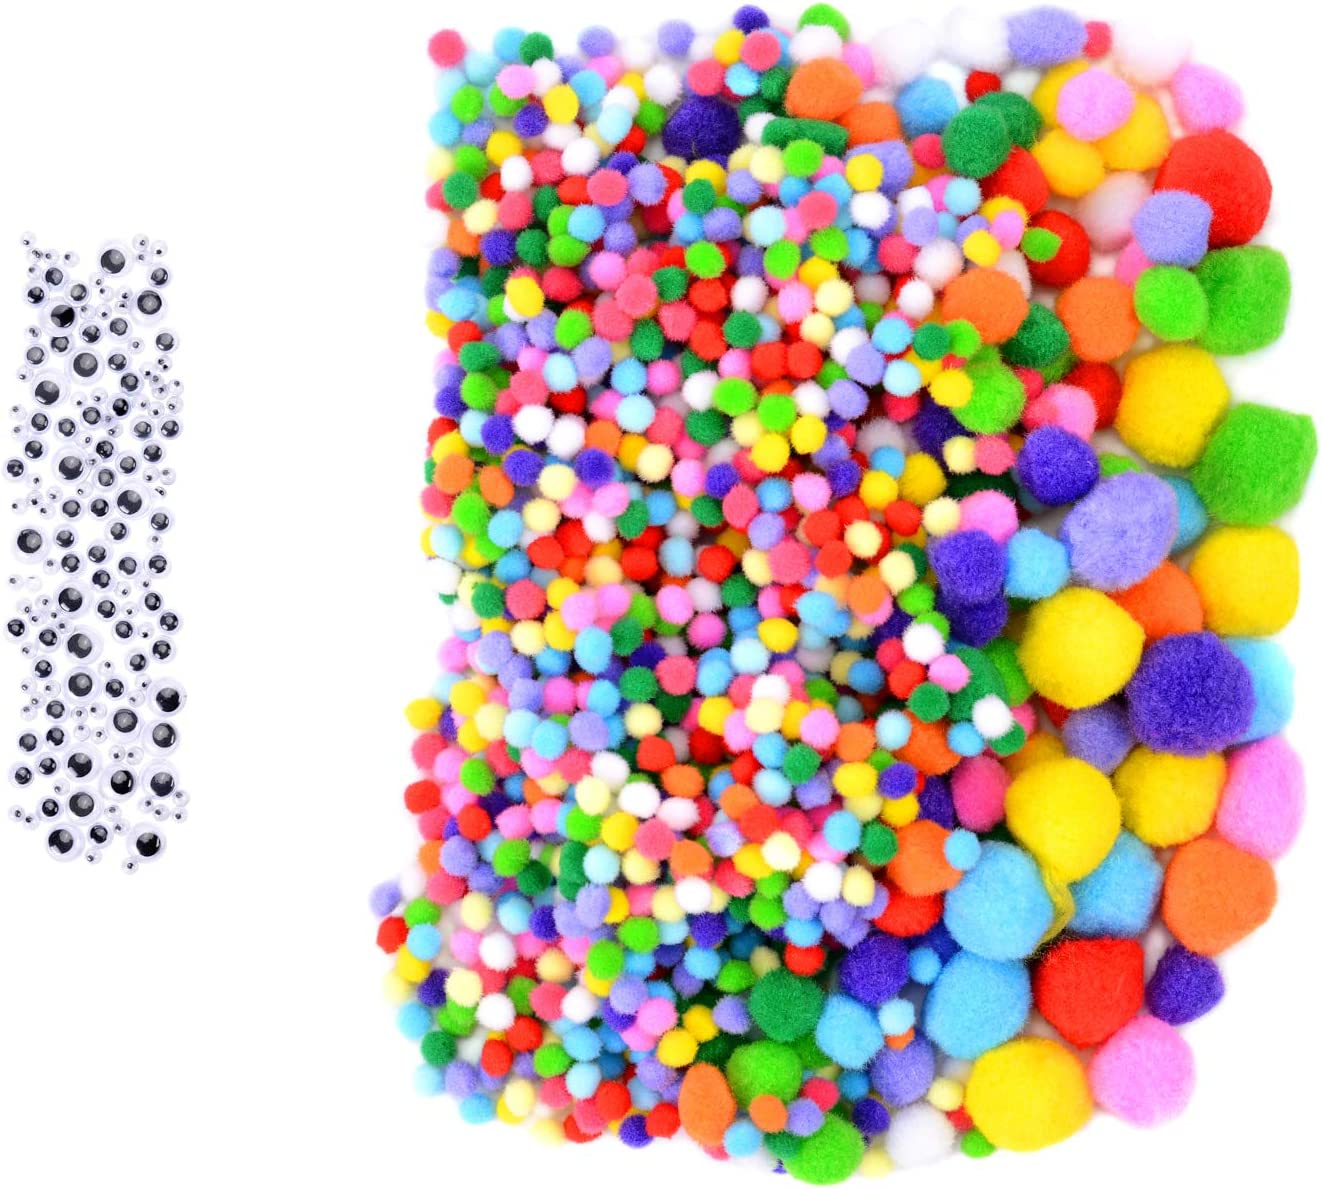 ZHAOER 1300 Pieces Outlet ☆ Free Shipping Pom 70% OFF Outlet Poms 5 for Sizes Colors Pompoms Assorted